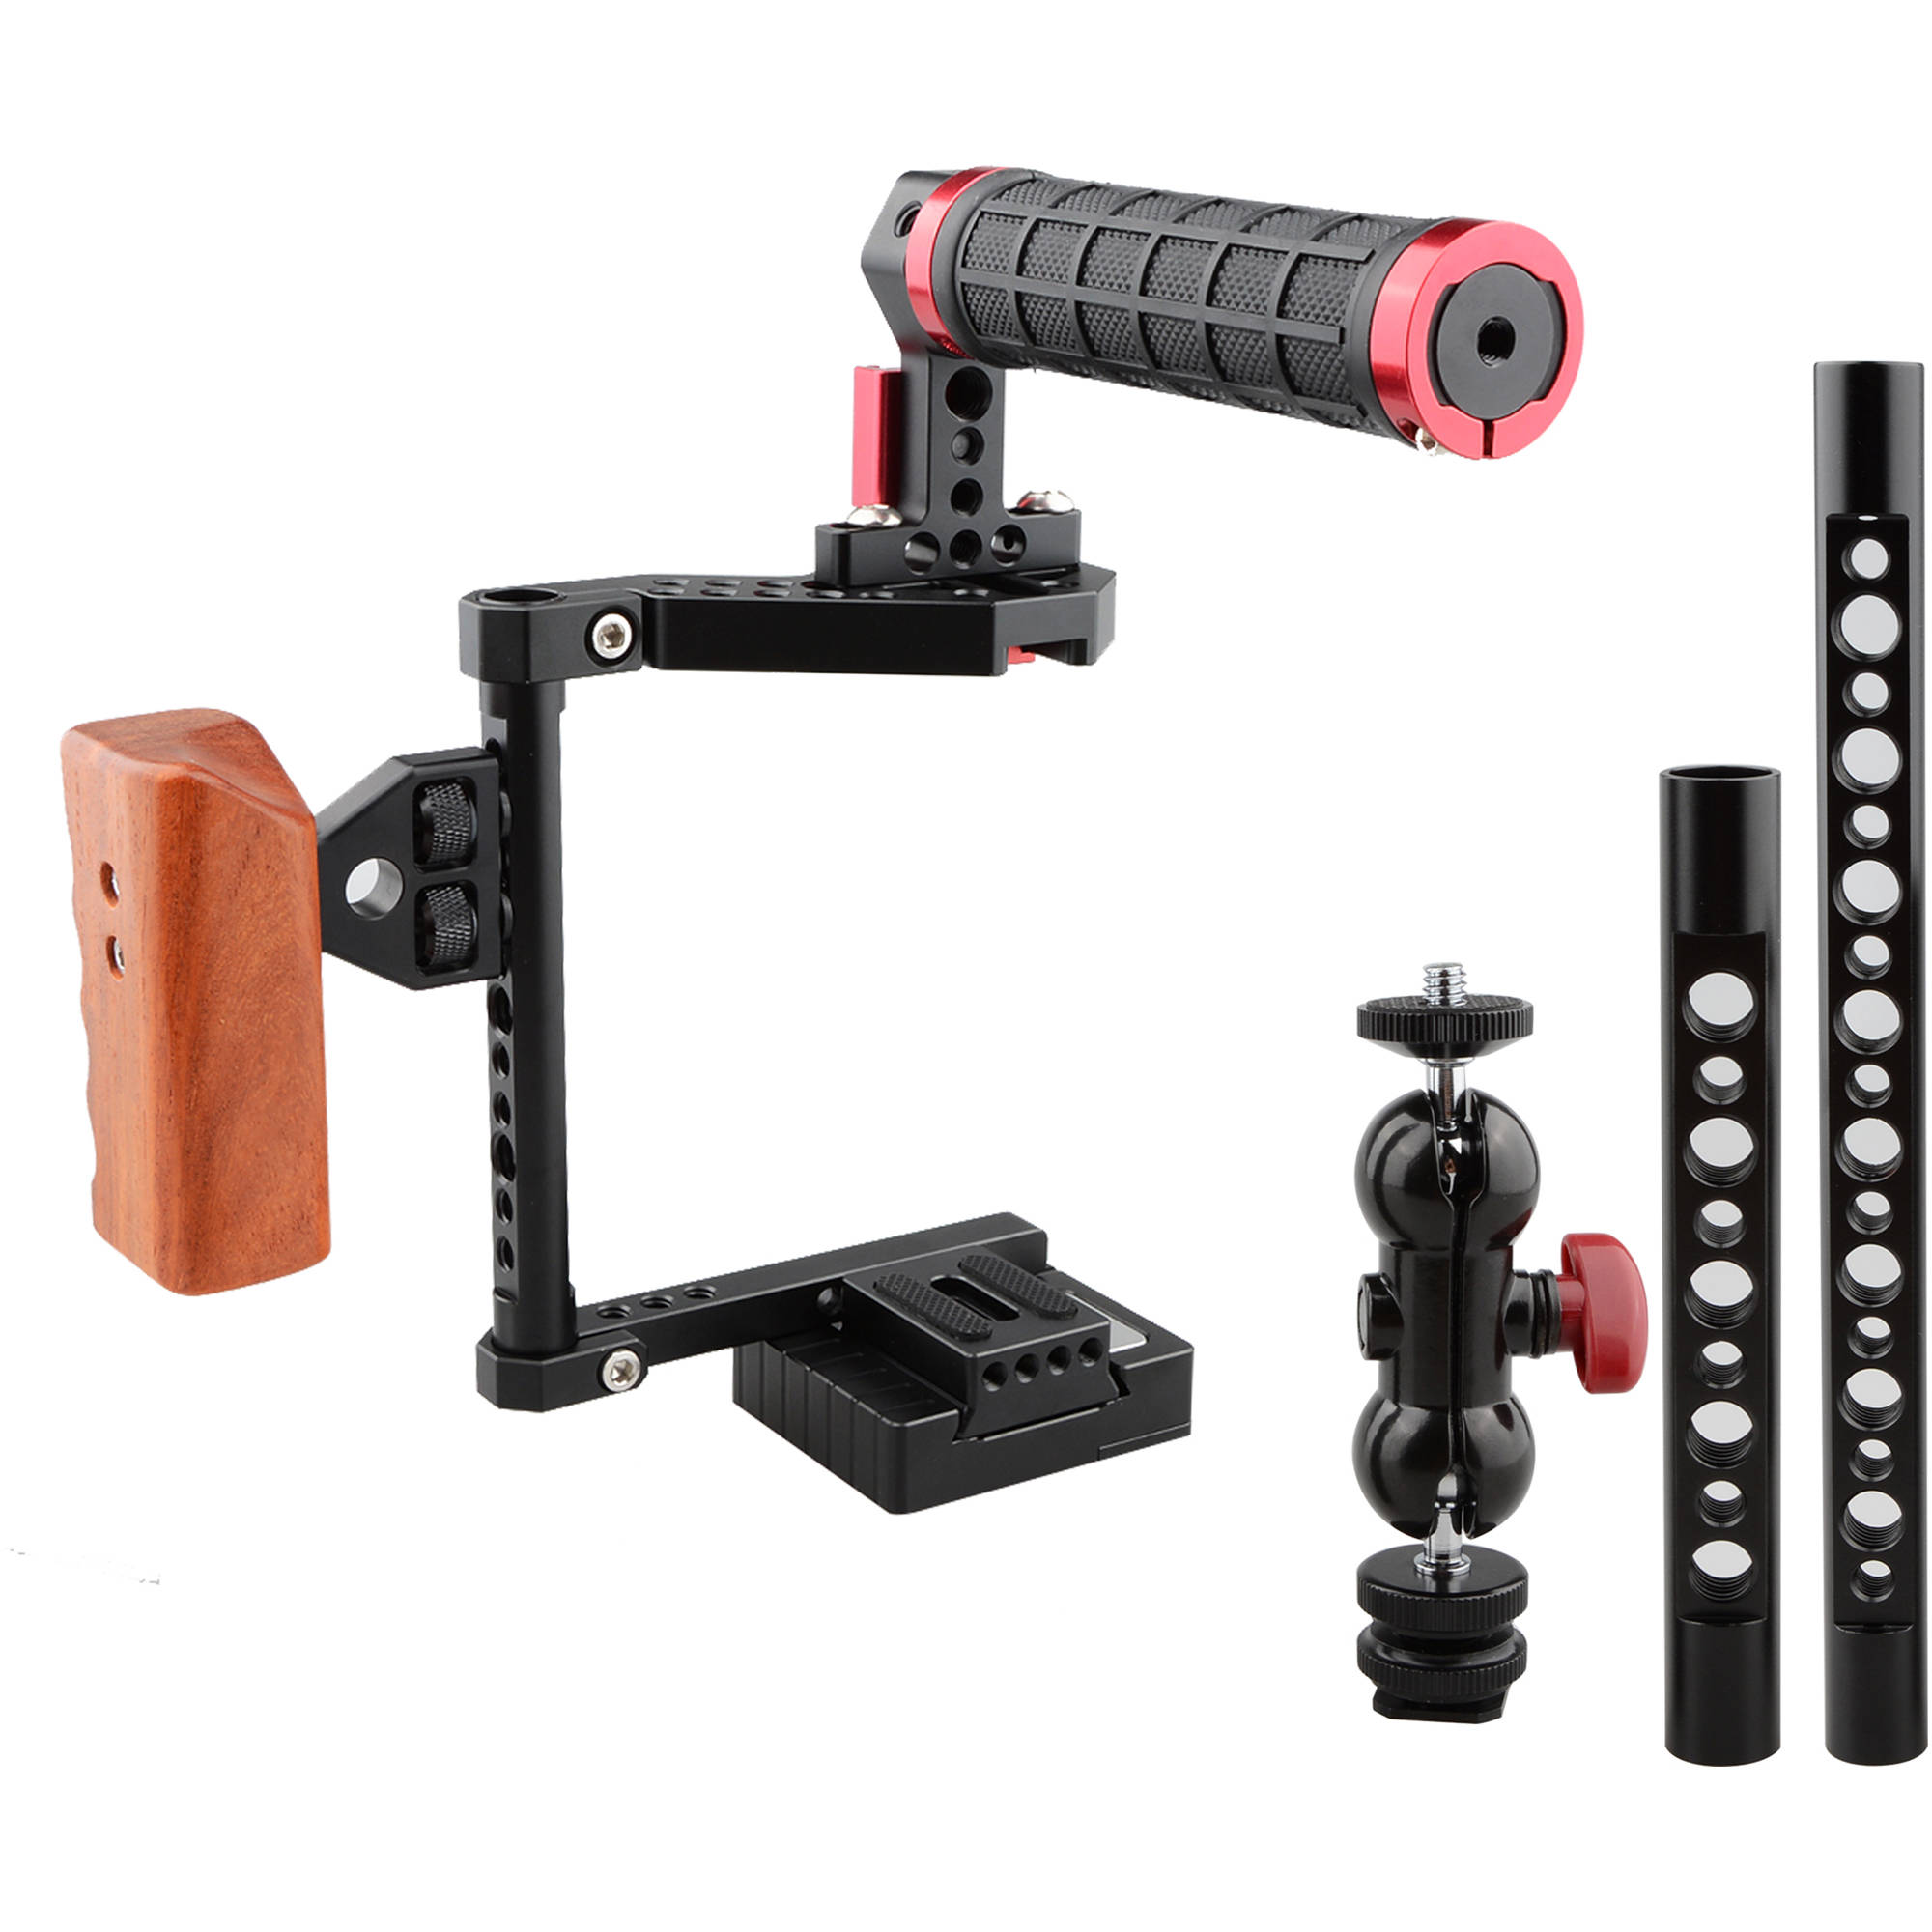 CAMVATE DSLR Camera Cage Kit for Medium and Large-Sized DSLRs